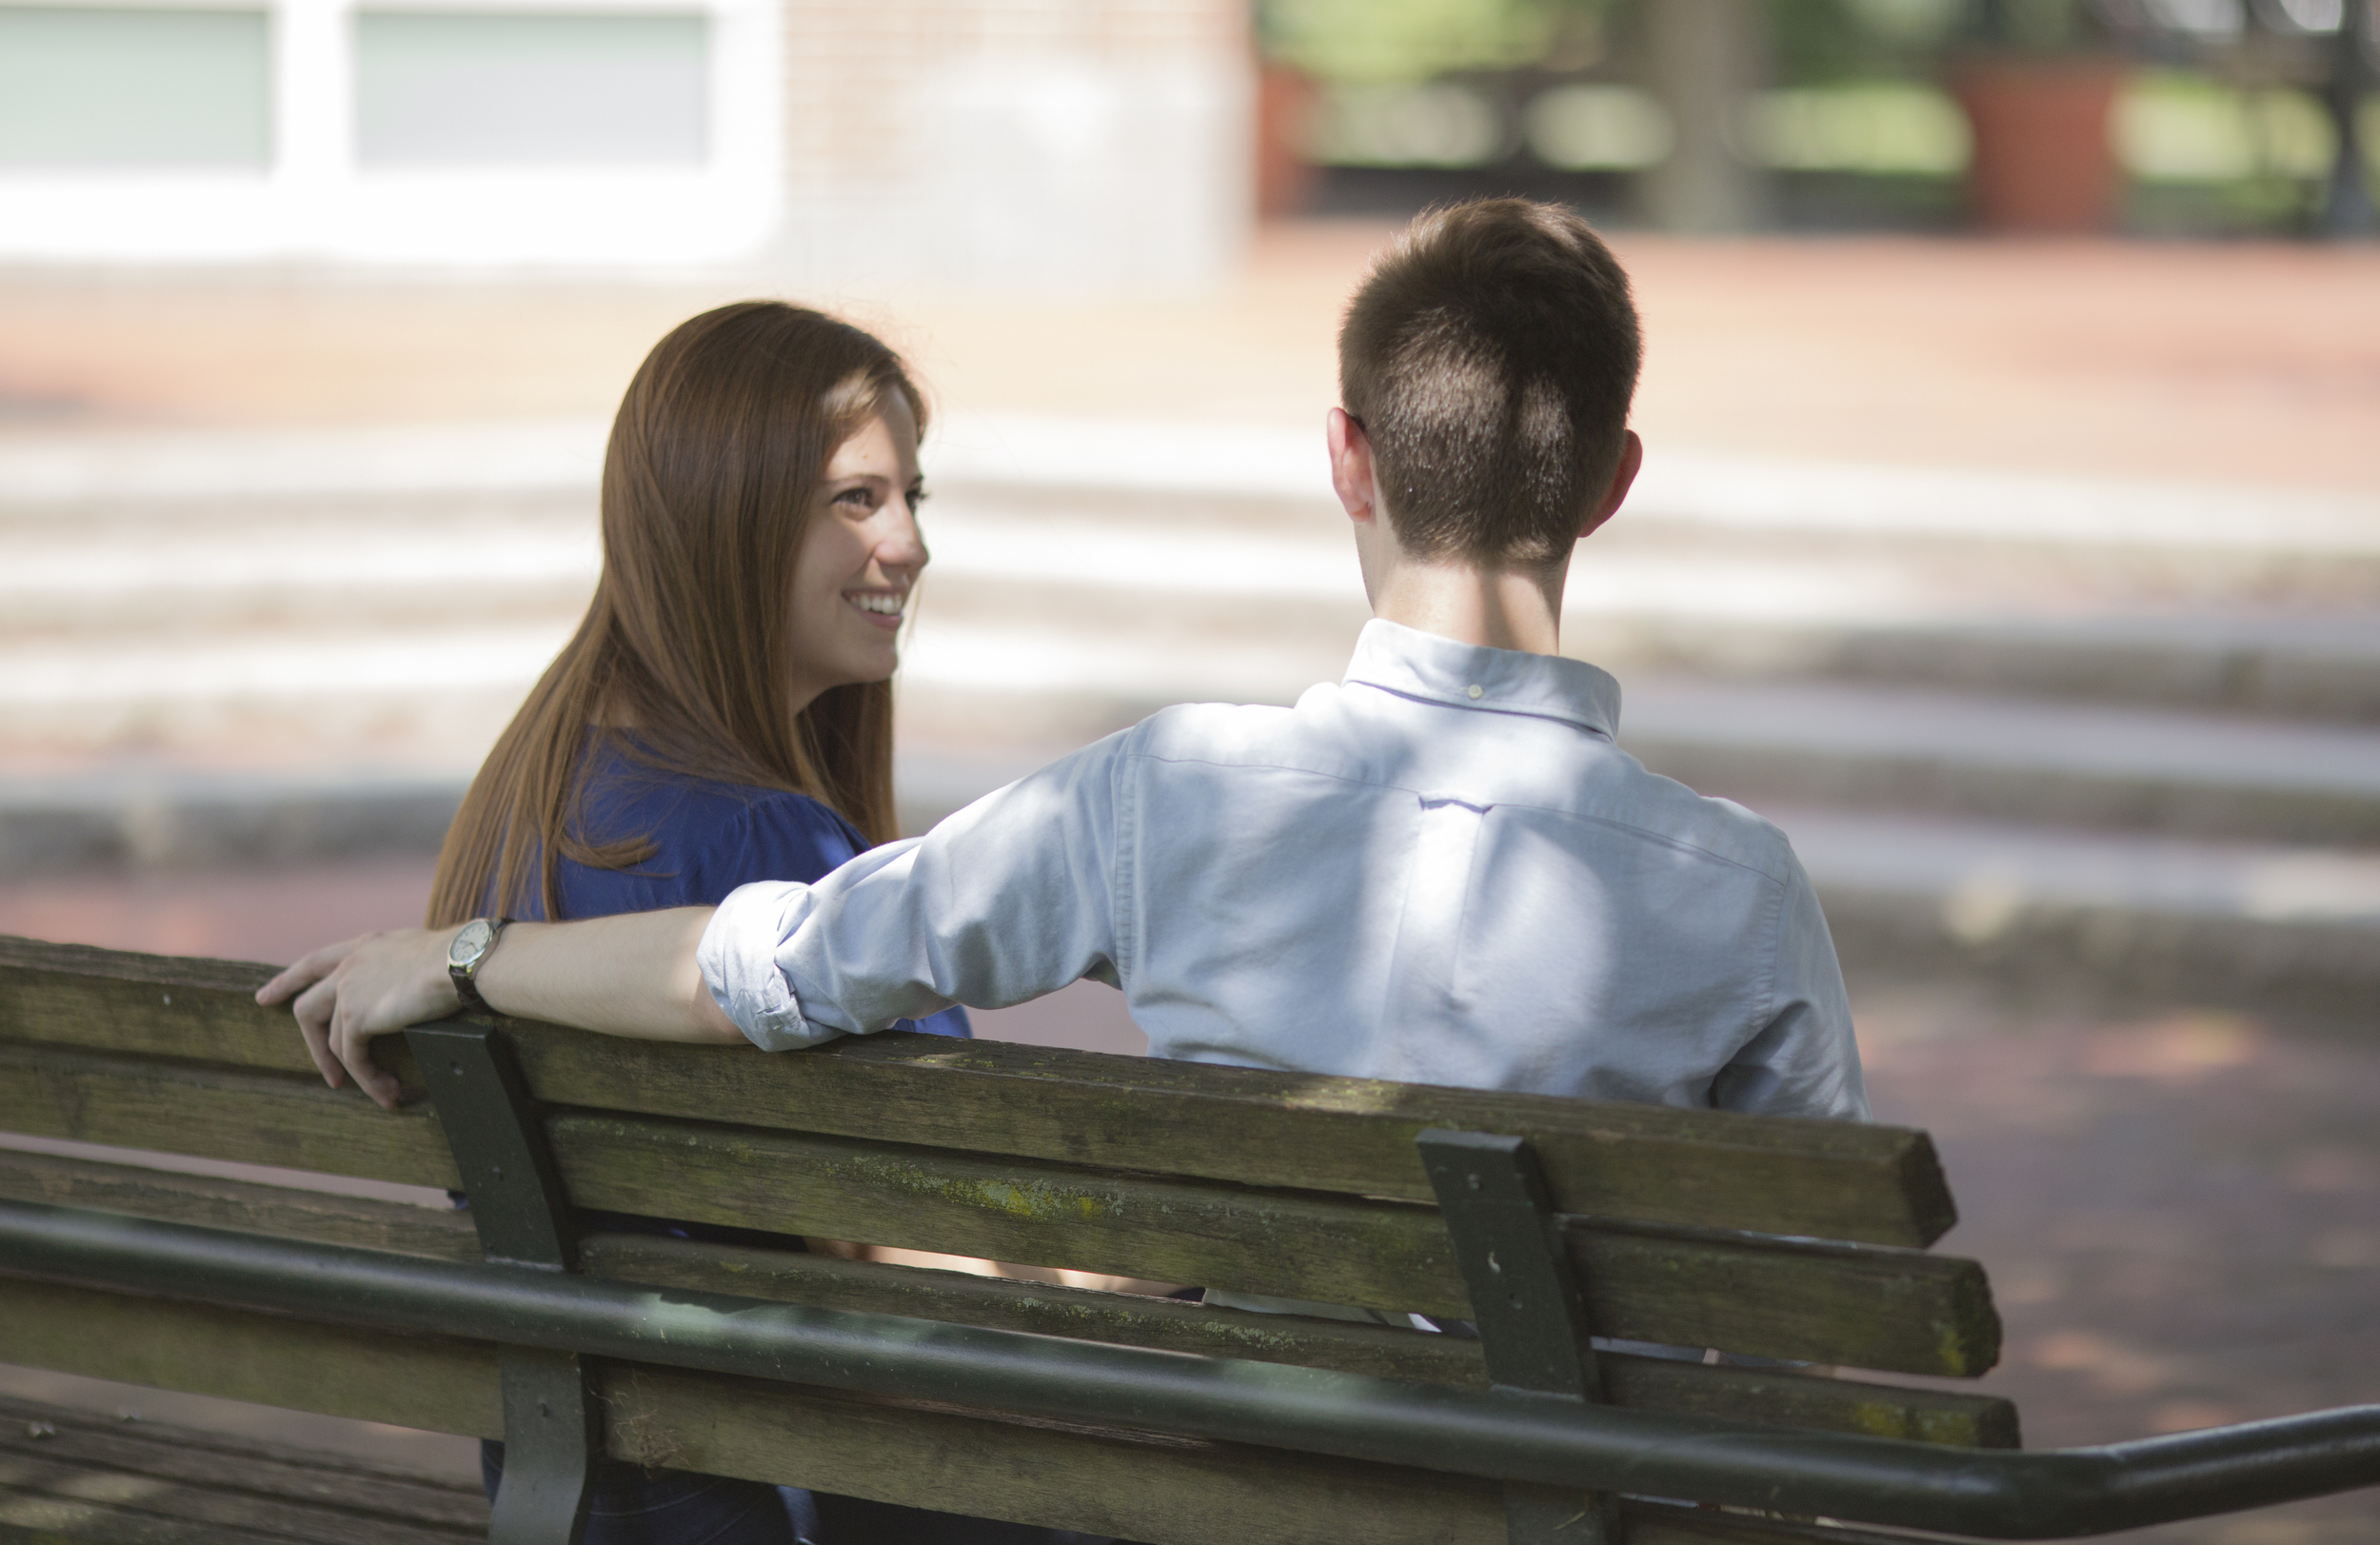 fotolia-boy and girl on bench.jpg